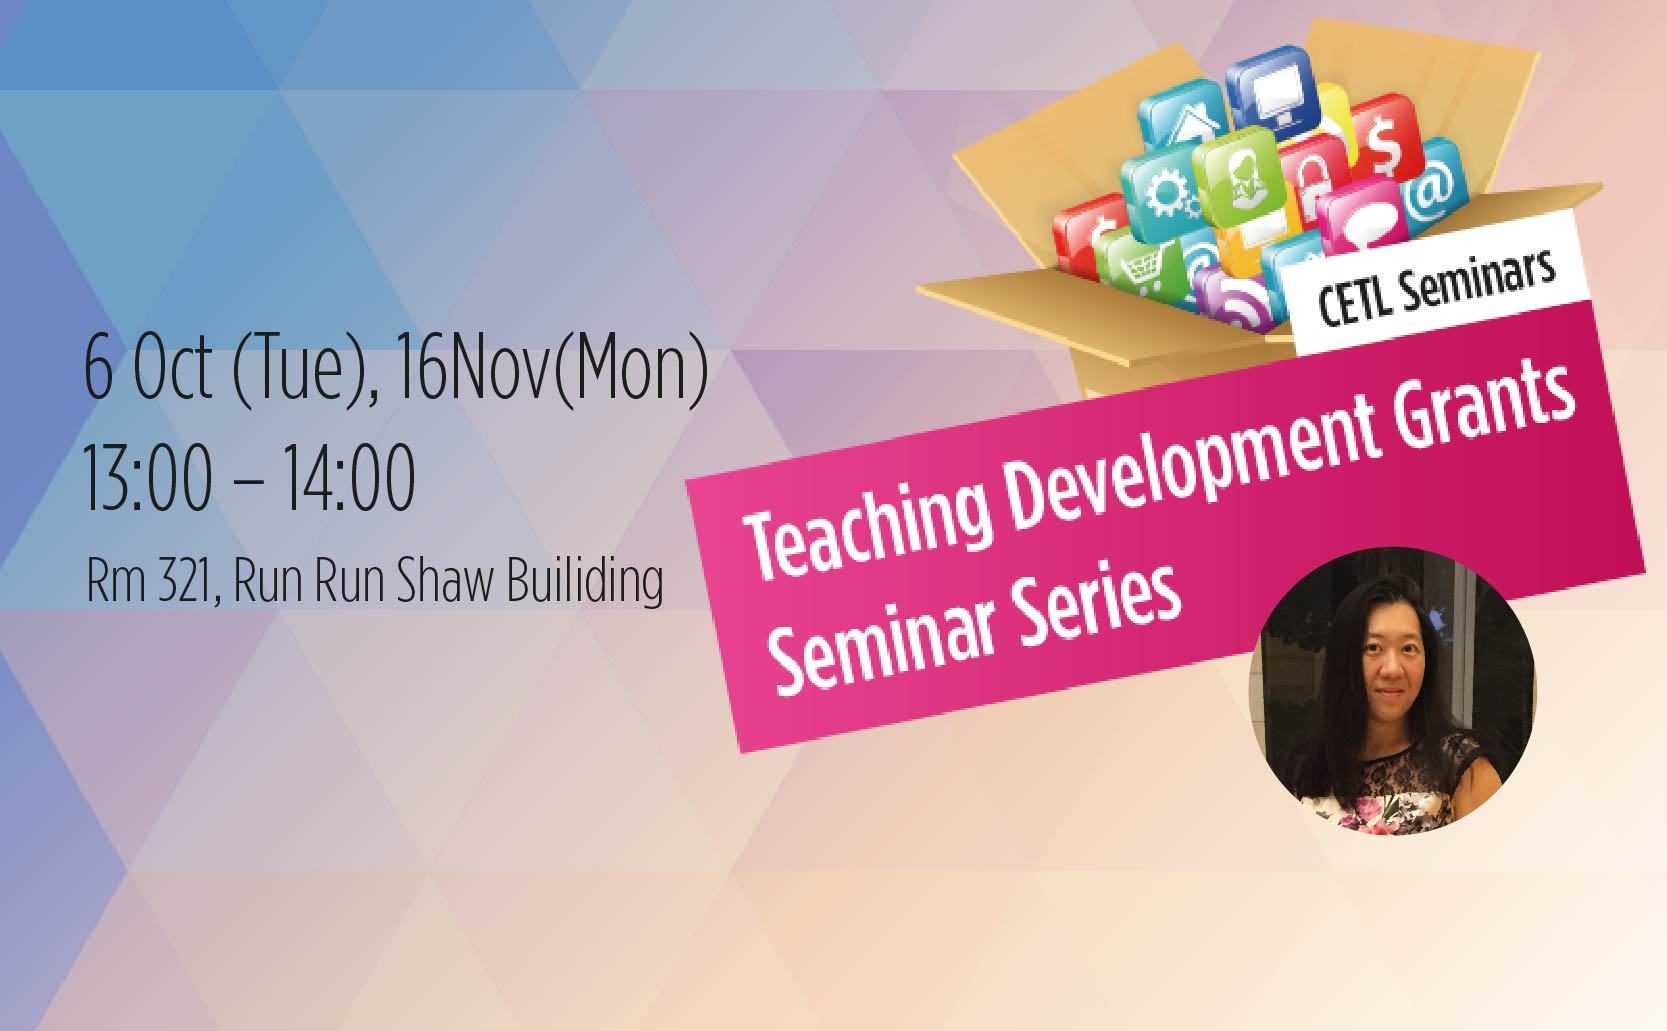 Teaching Development Grants (TDG) Seminar Series